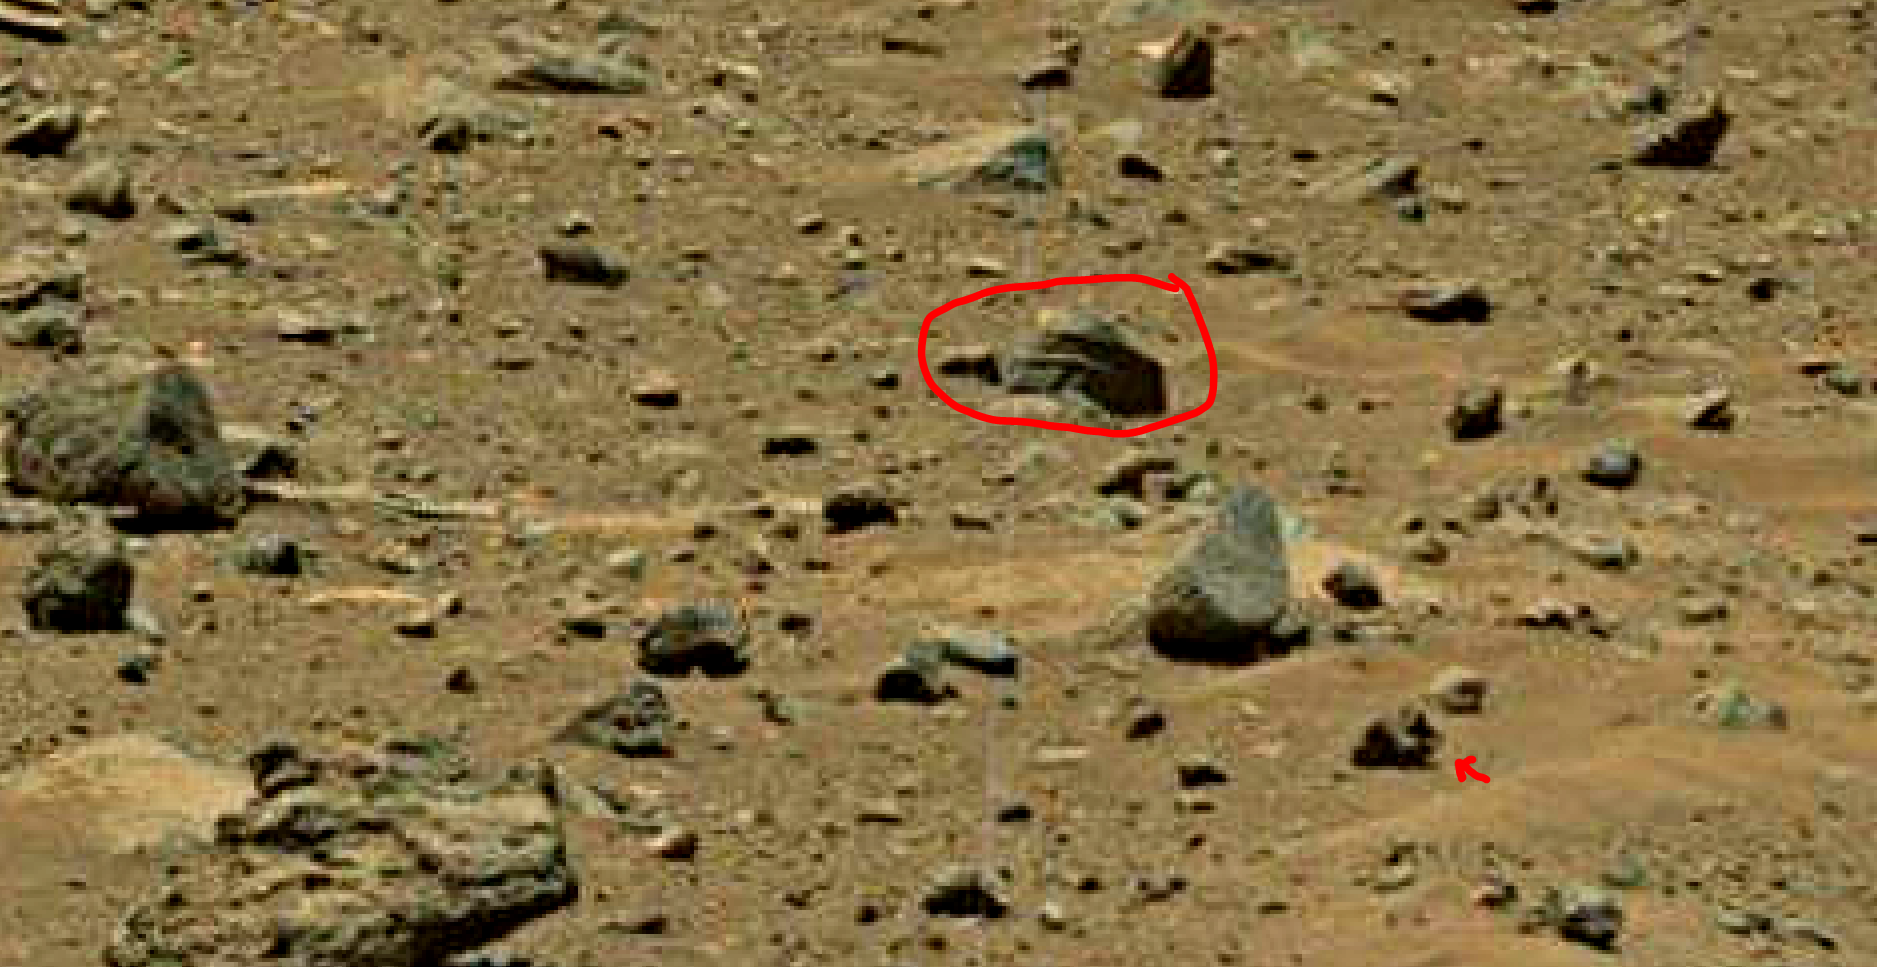 mars sol 1402 anomaly artifacts 3 was life on mars